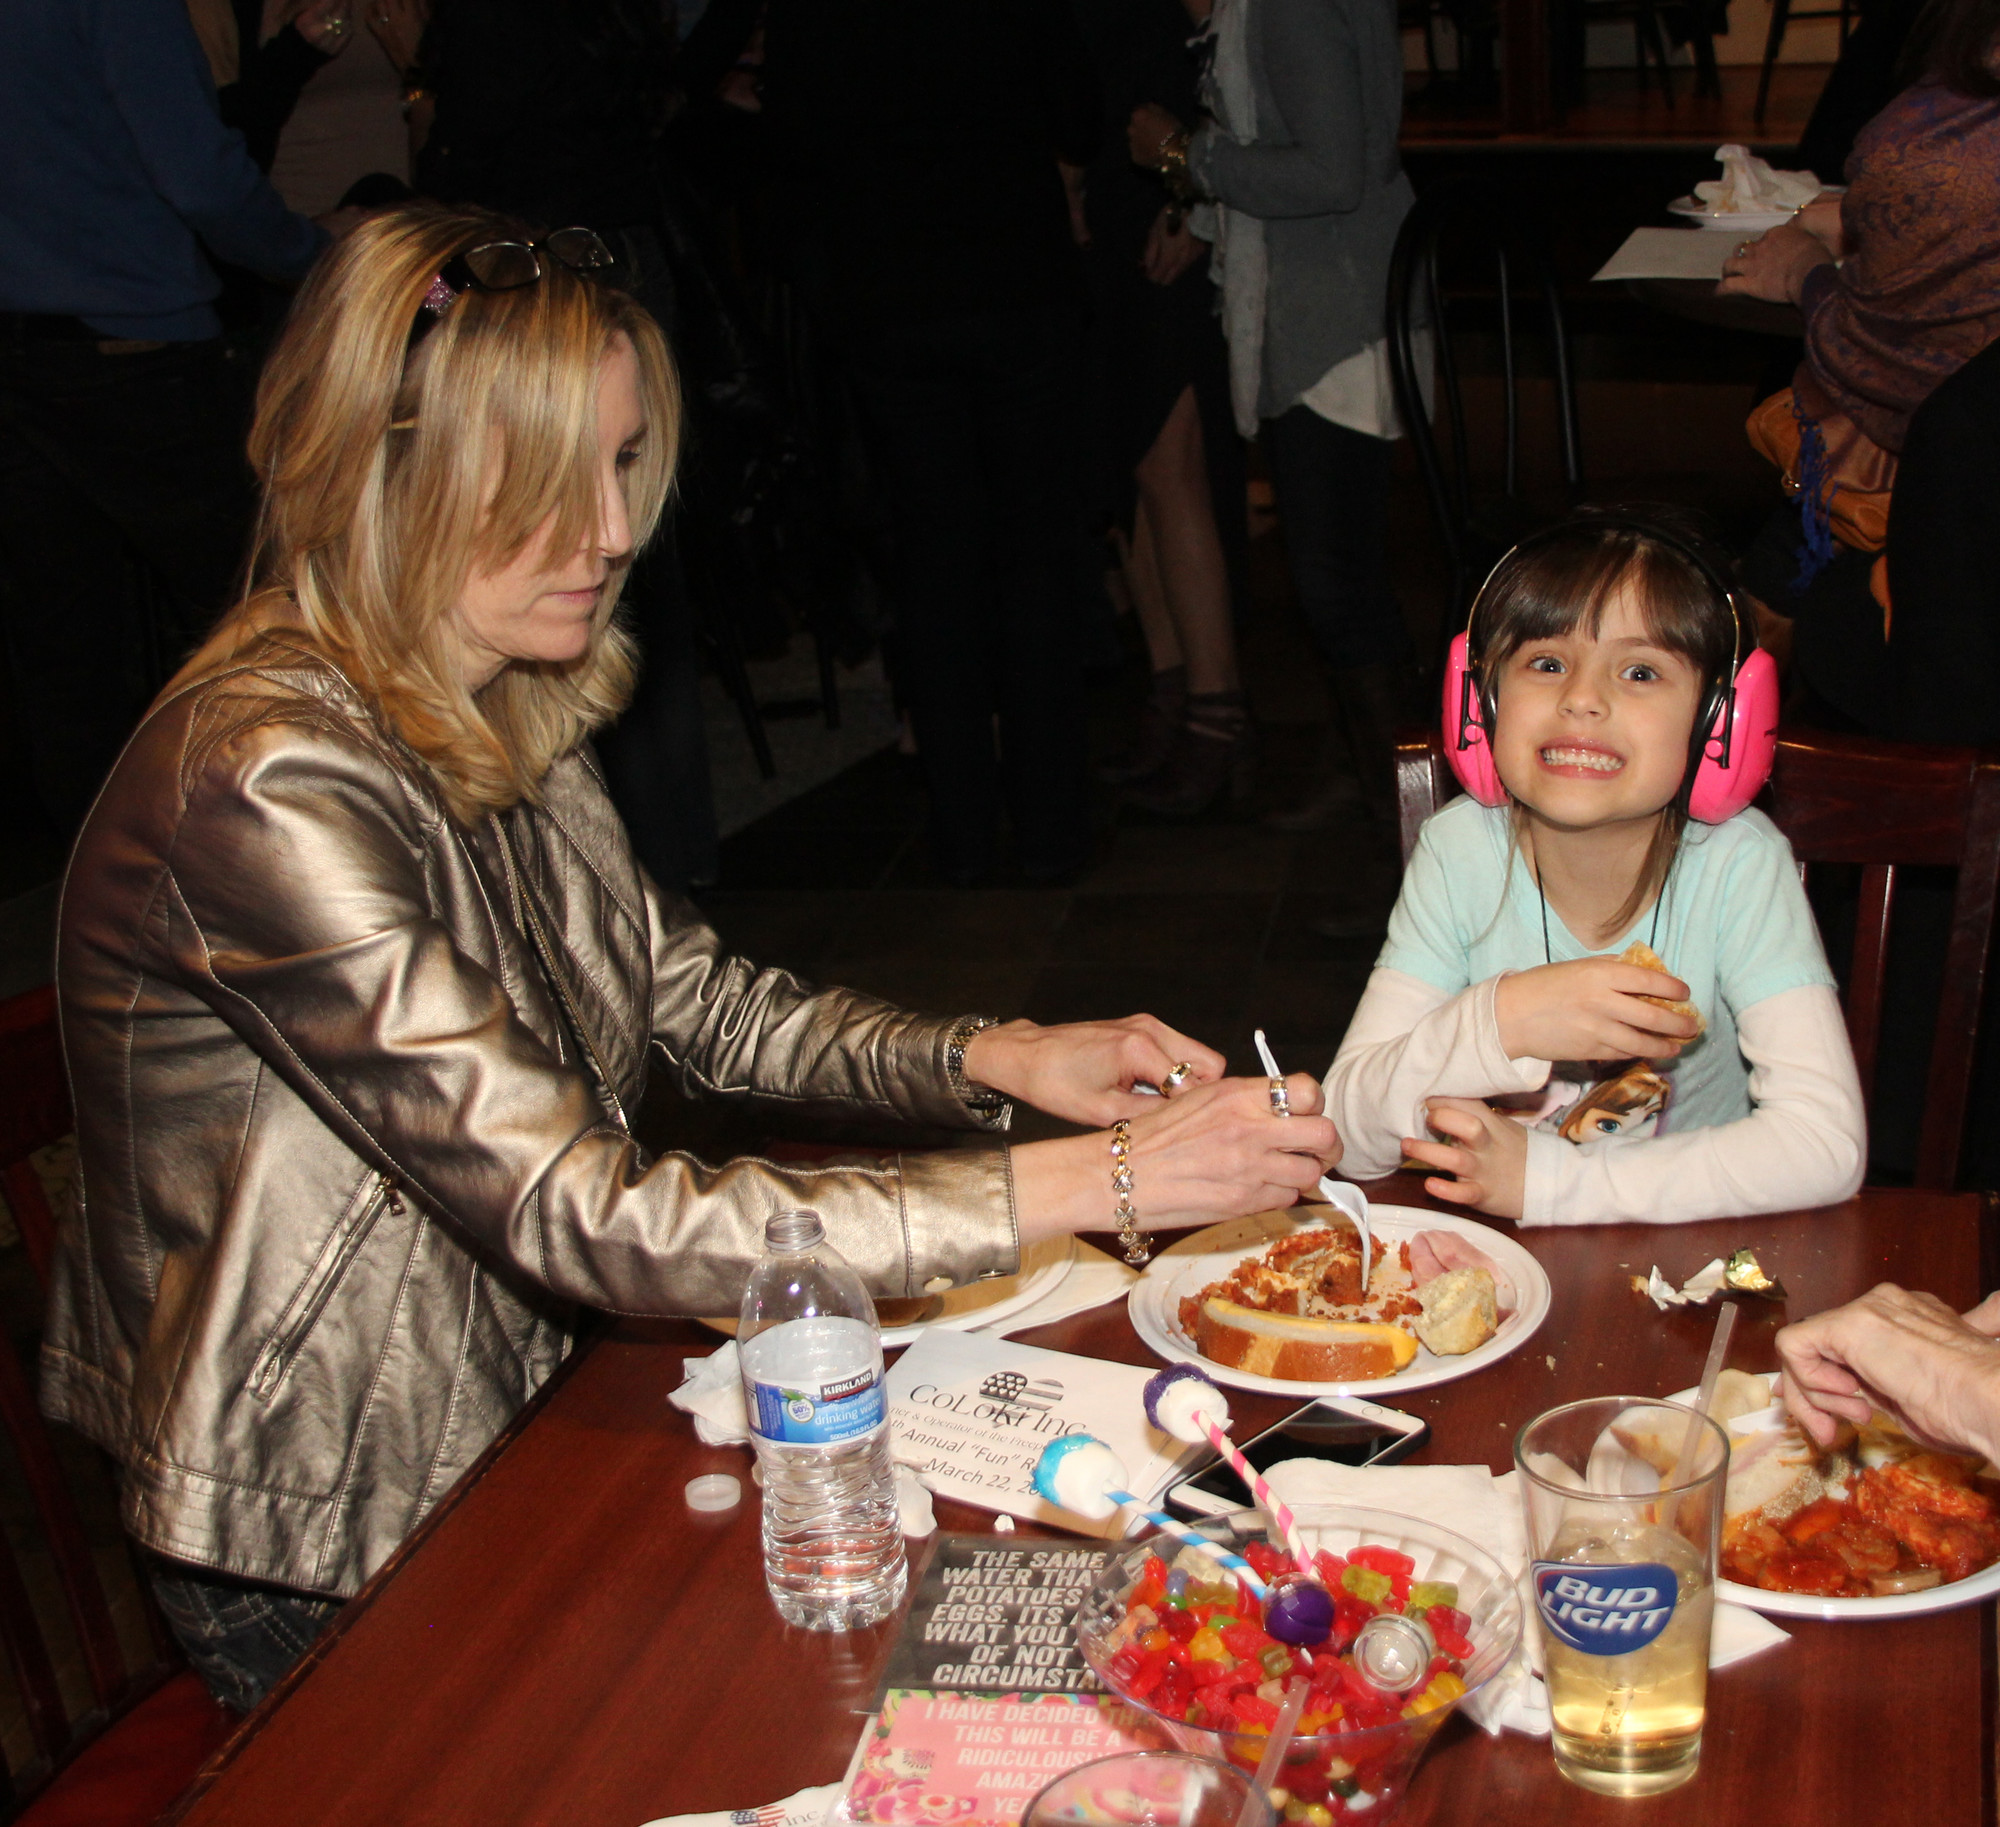 Allison Rohlman and her daughter Valentina enjoyed the food.